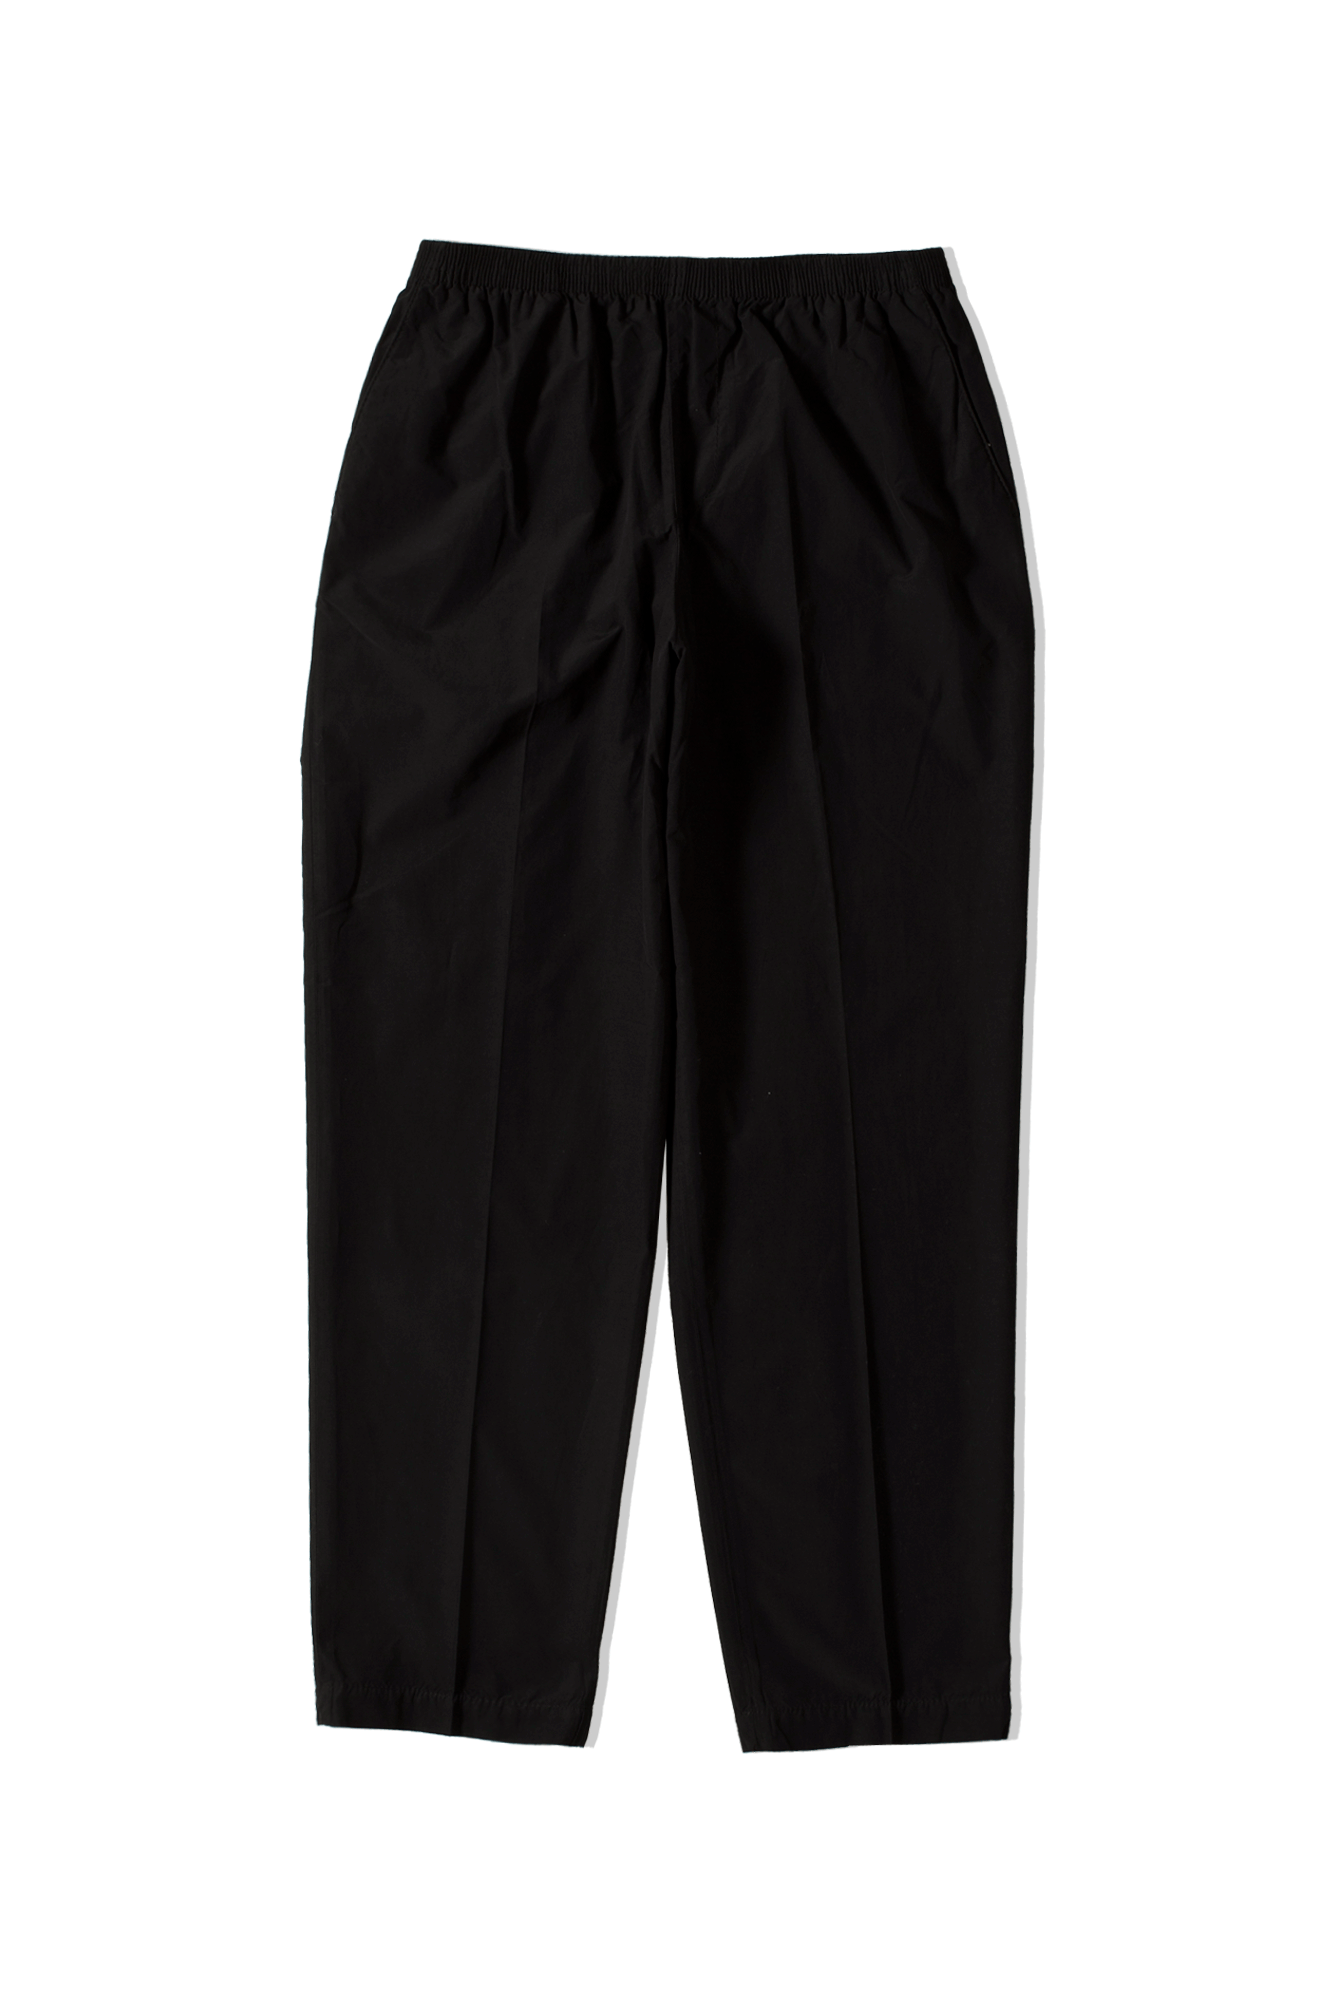 Cellar Door Trousers Alfred Black LA110019#LF309#99#48 - One Block Down